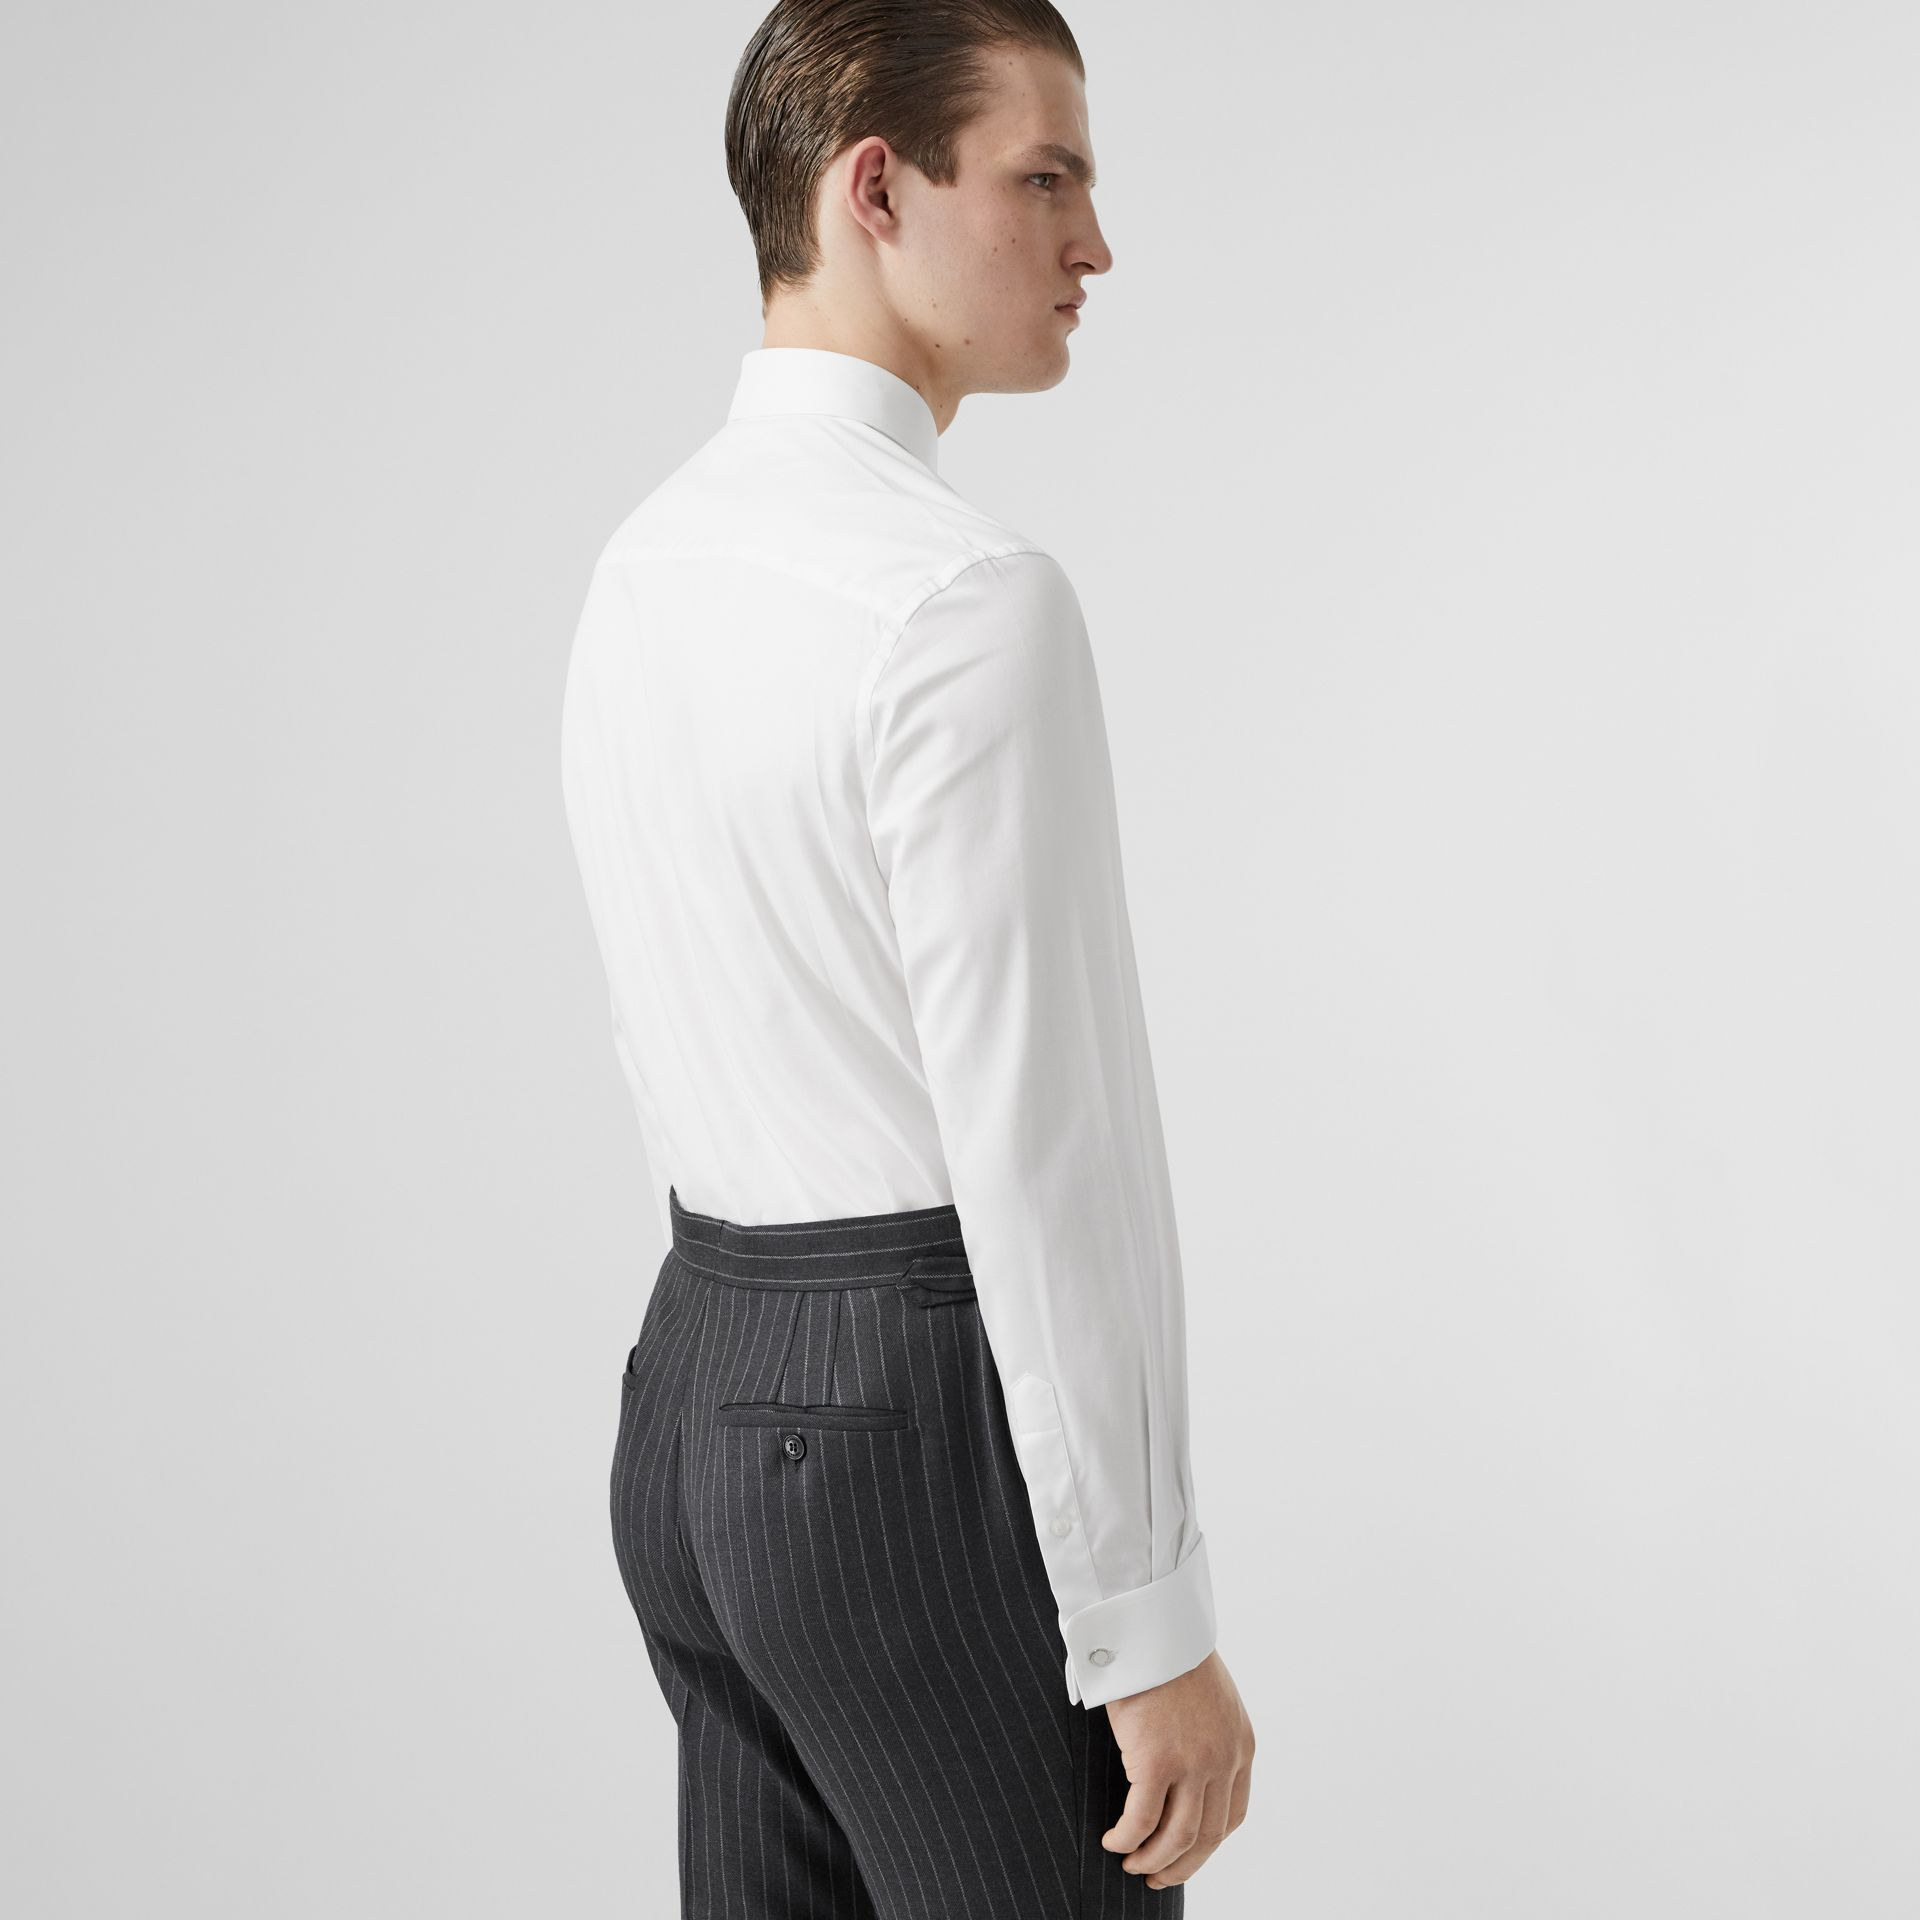 Classic Fit Monogram Motif Cotton Oxford Shirt in White - Men | Burberry Canada - gallery image 2